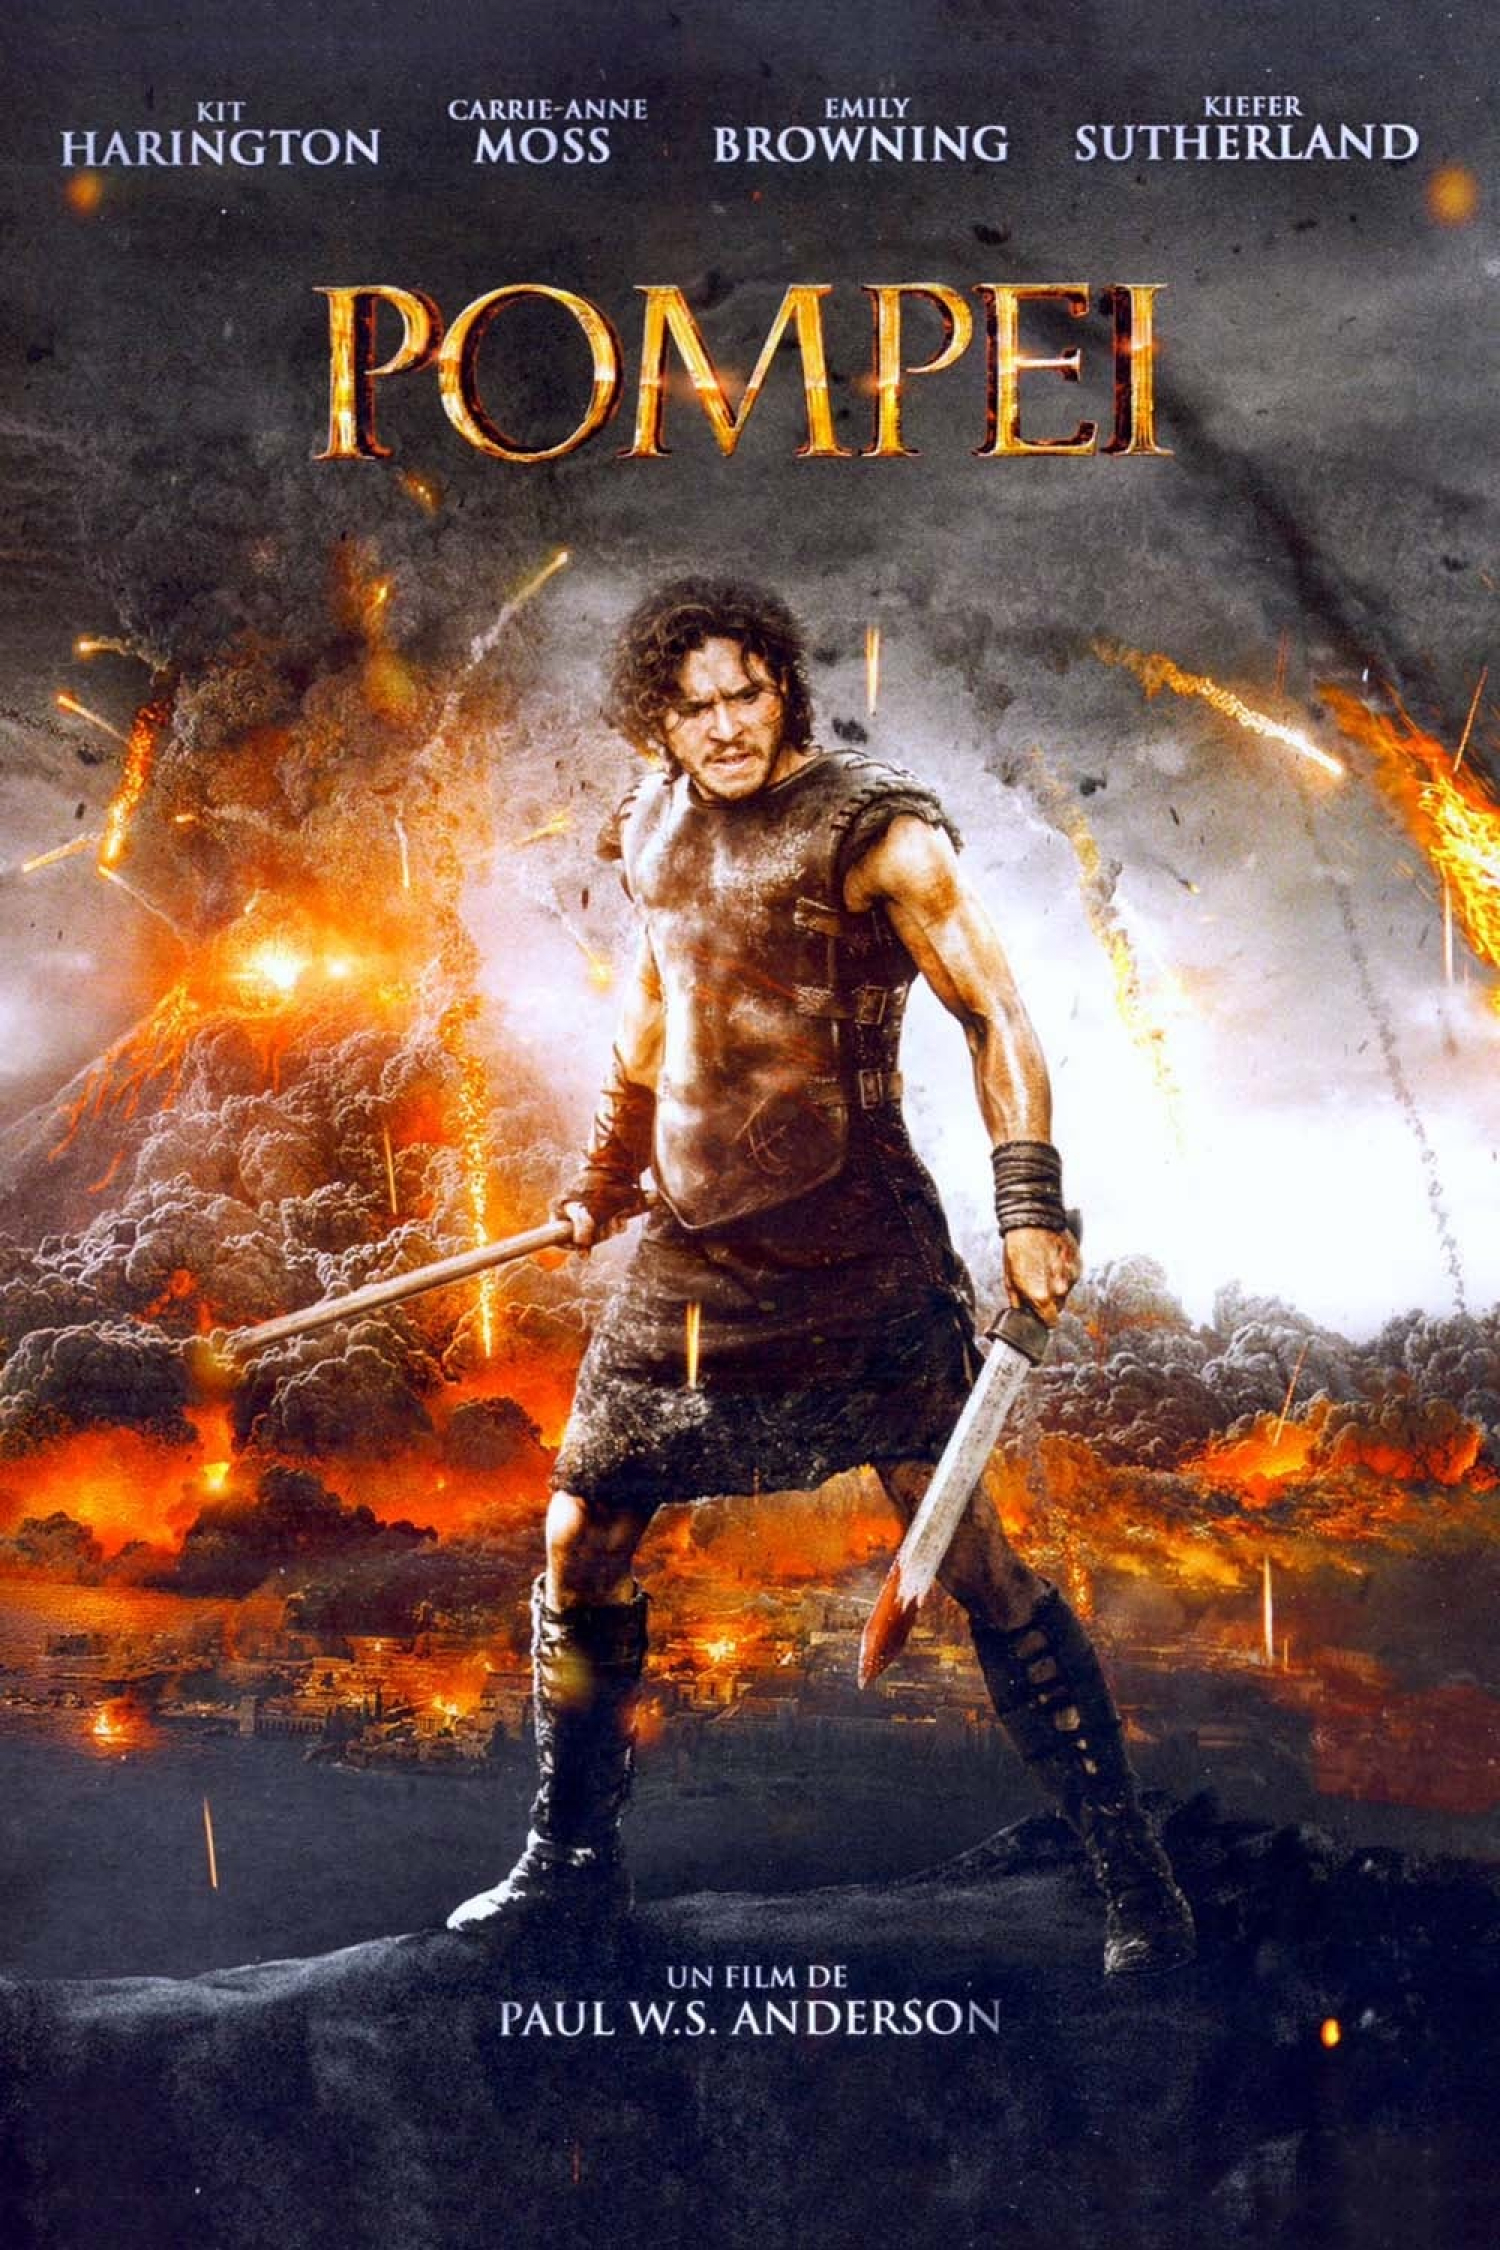 Pompeii - Movie info and showtimes in Trinidad and Tobago ...